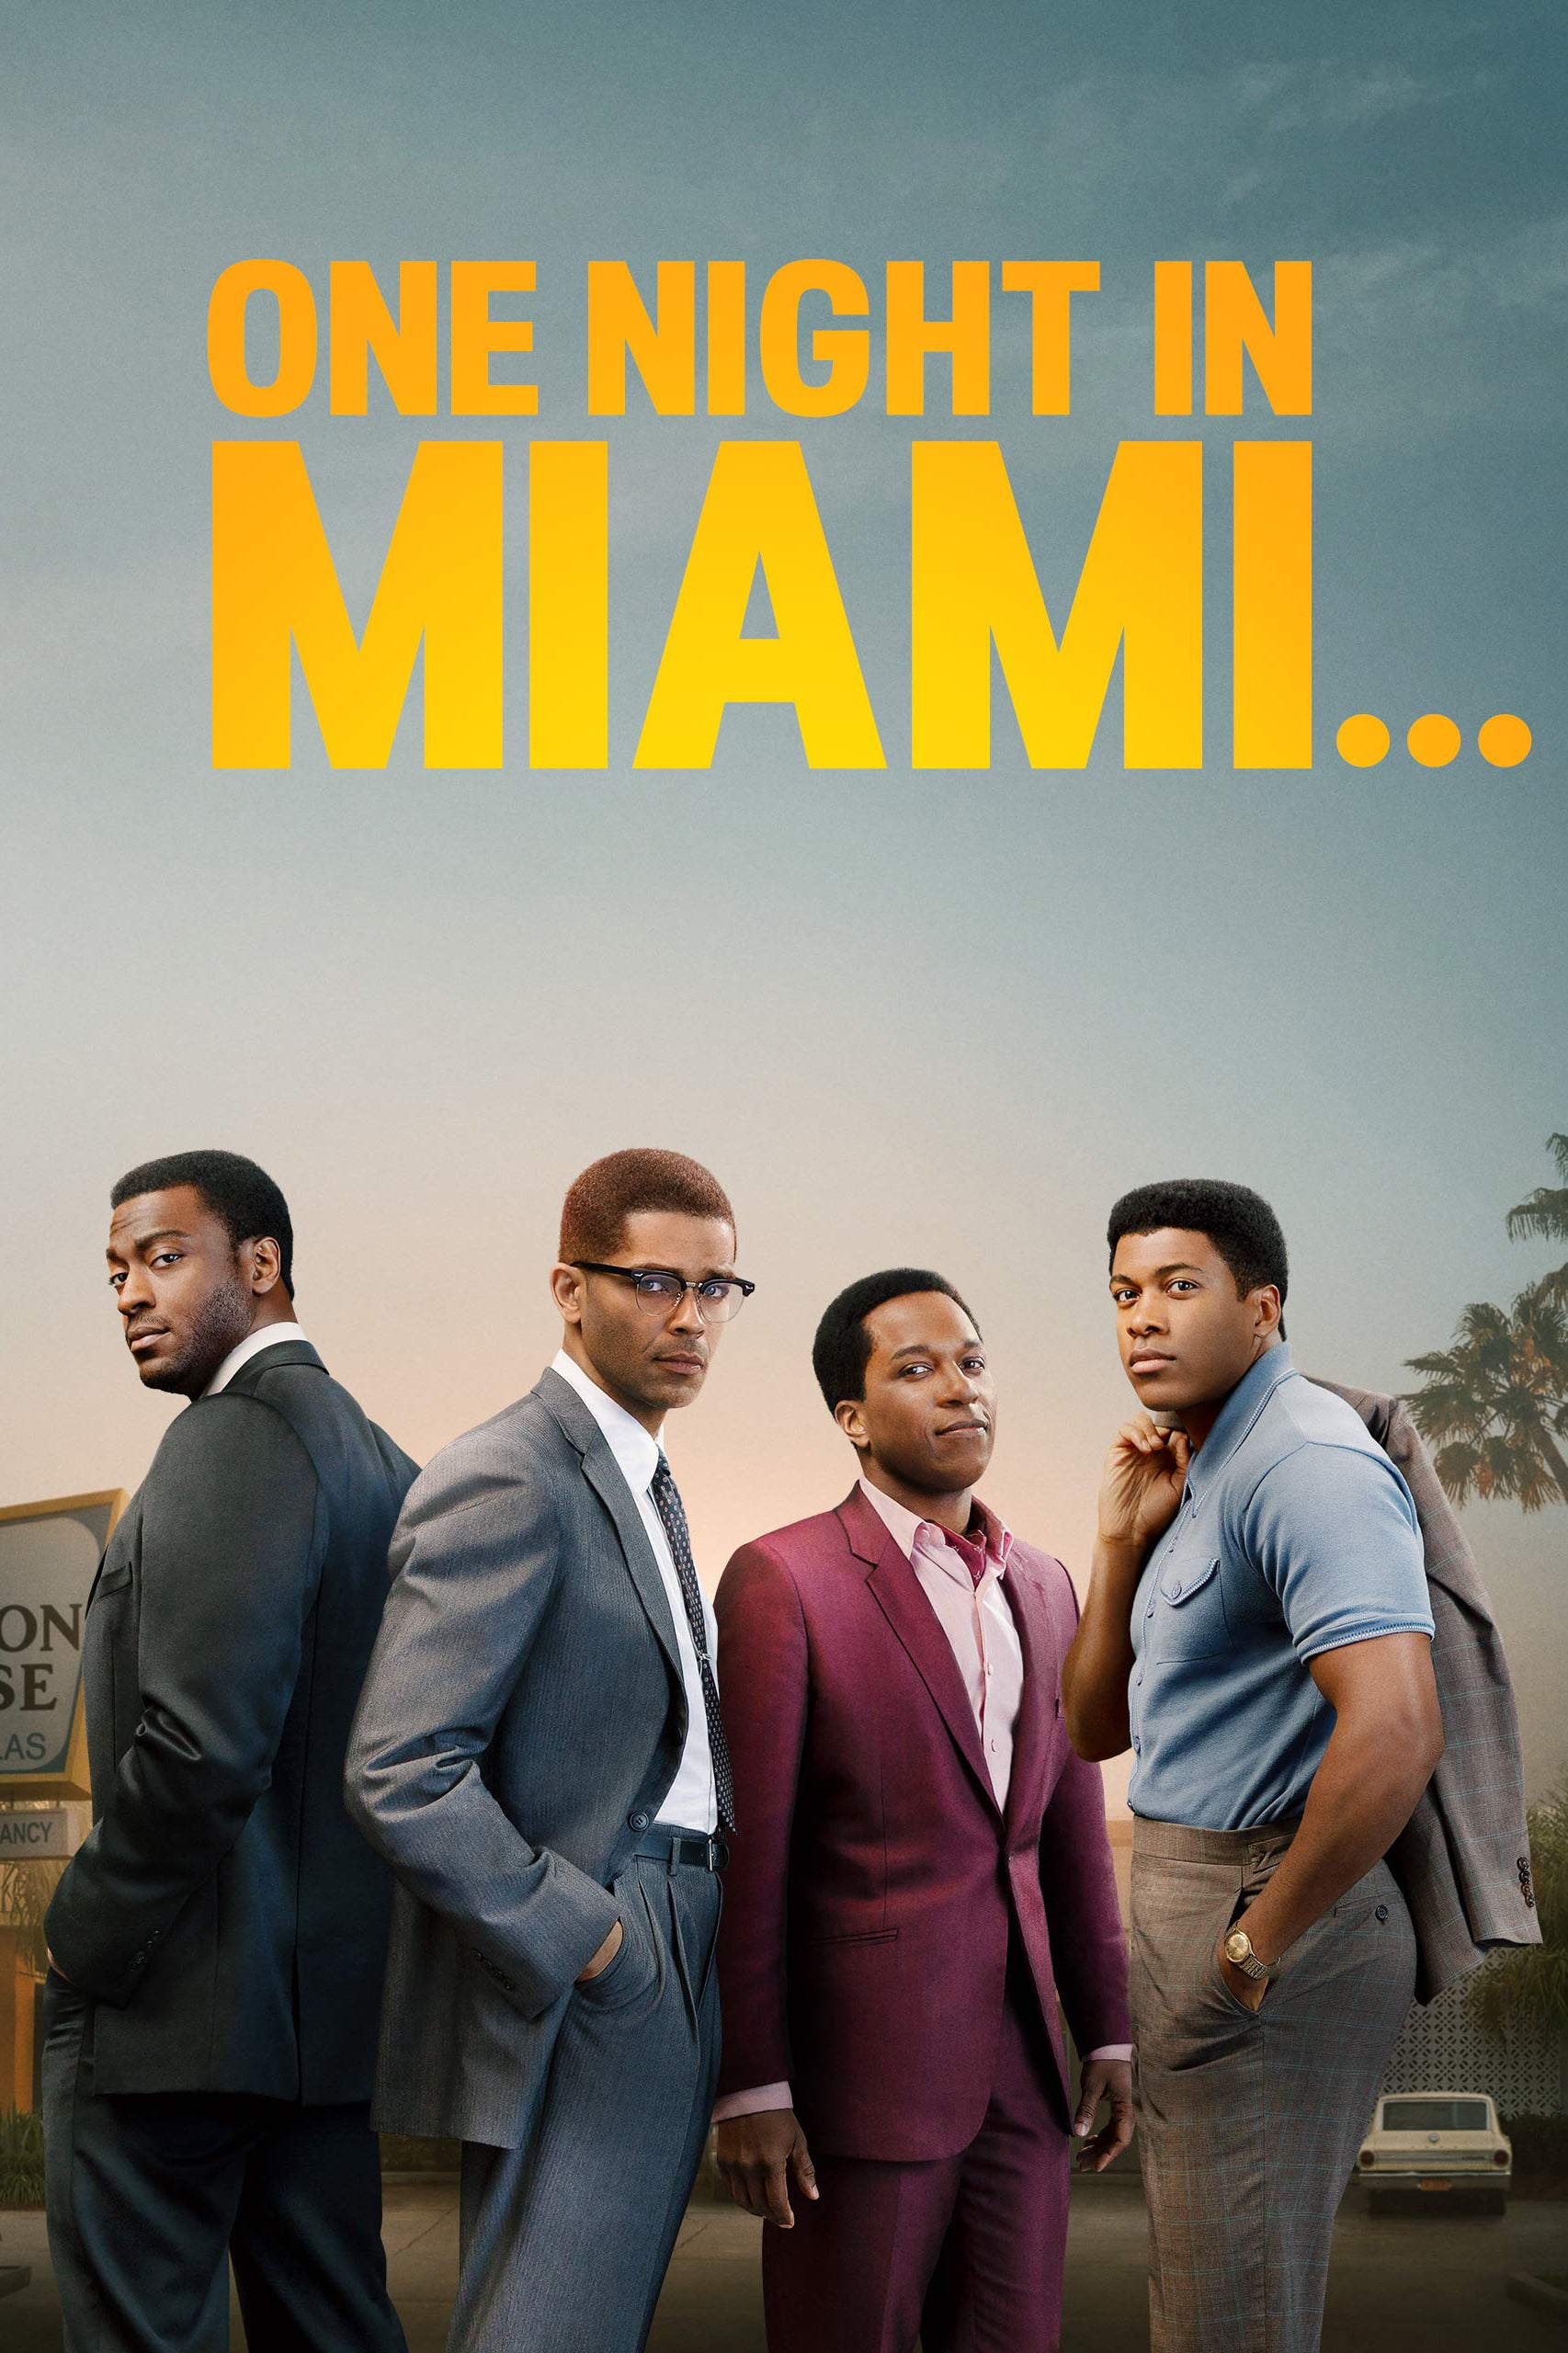 One Night in Miami... Movie Streaming Online